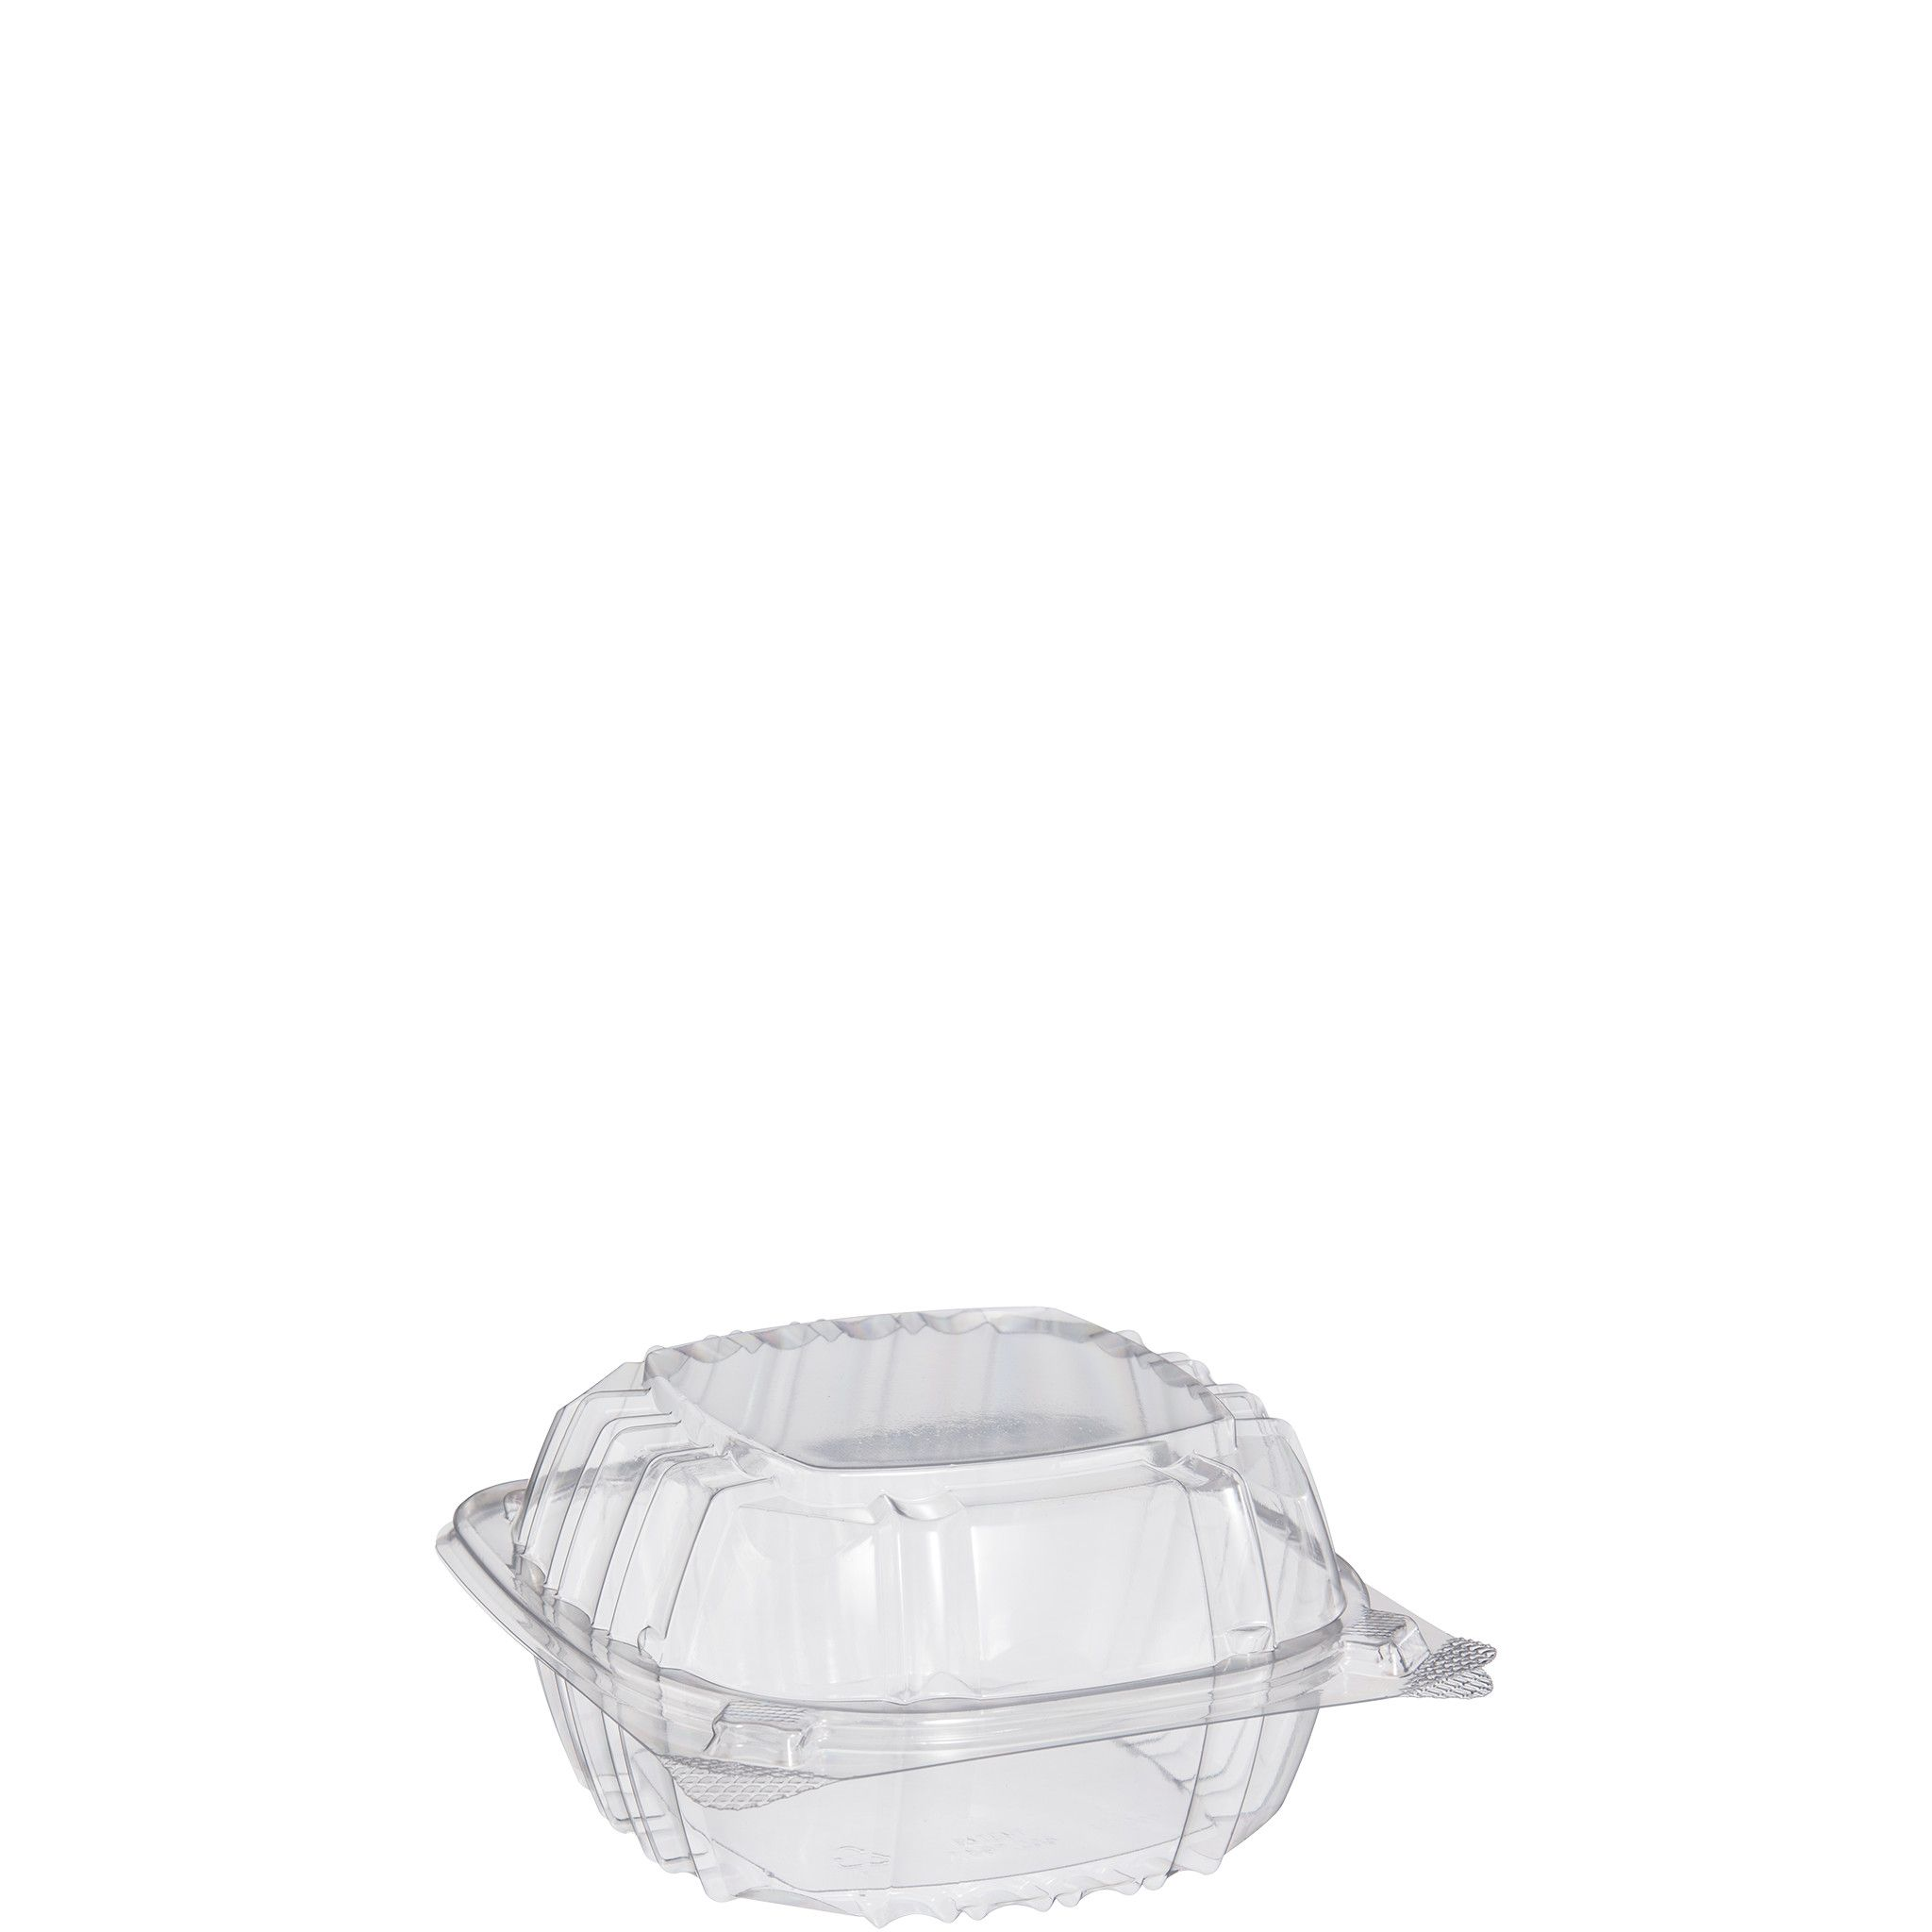 ClearSeal® Sandwich Container with Hinge Lid - 6in, Clear